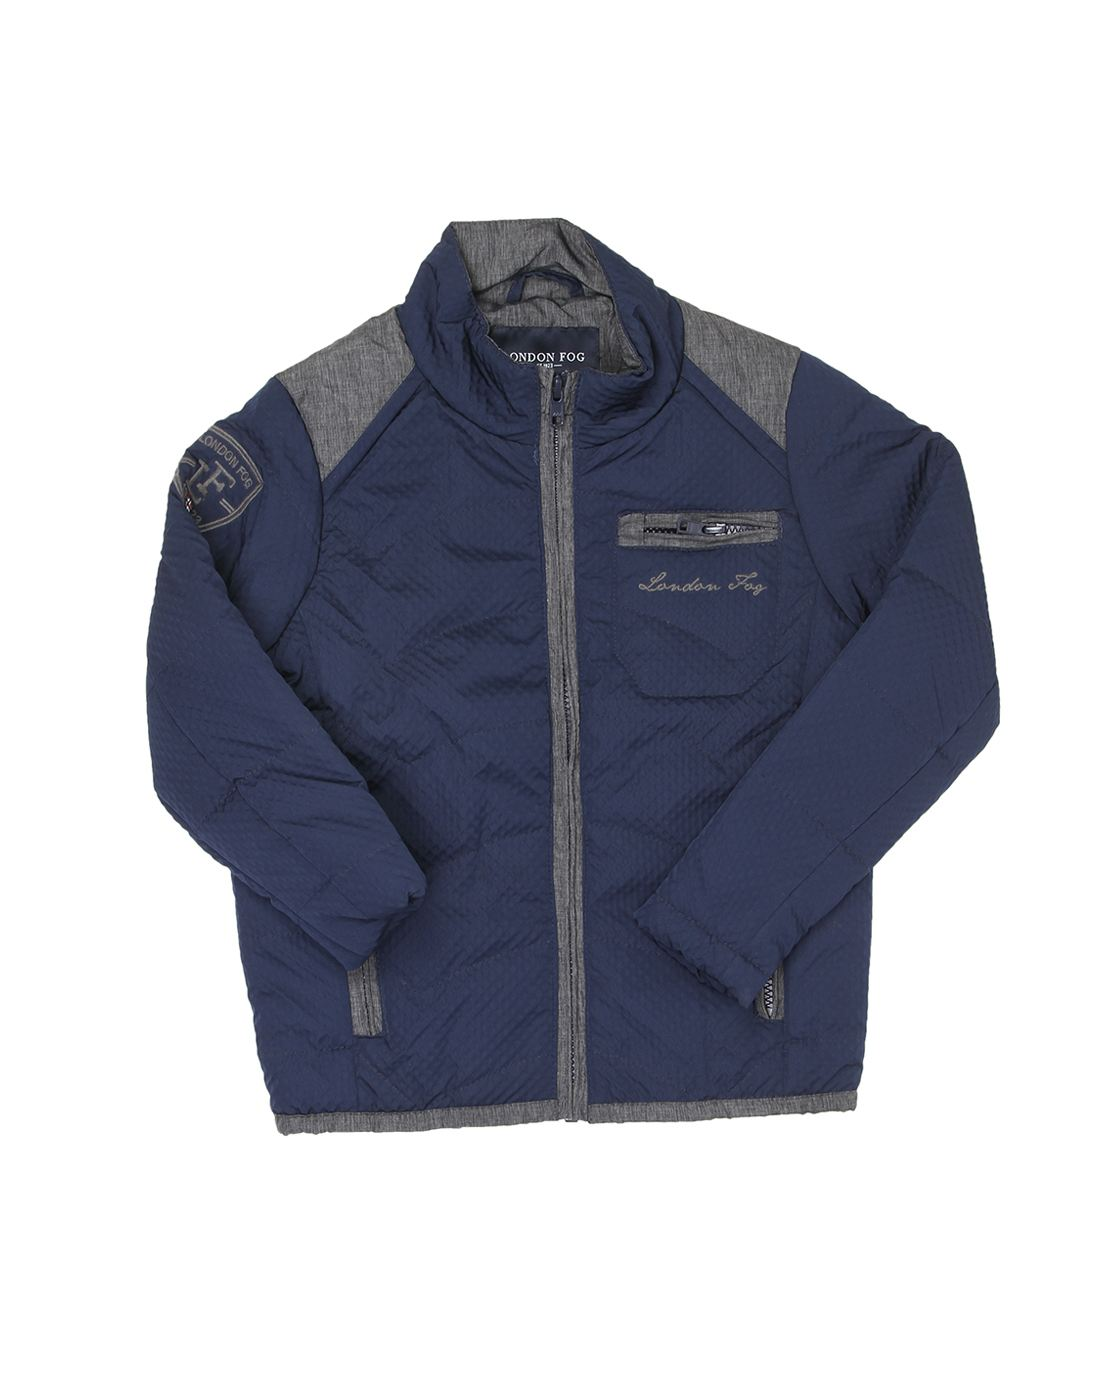 London Fog Boys Blue Jacket